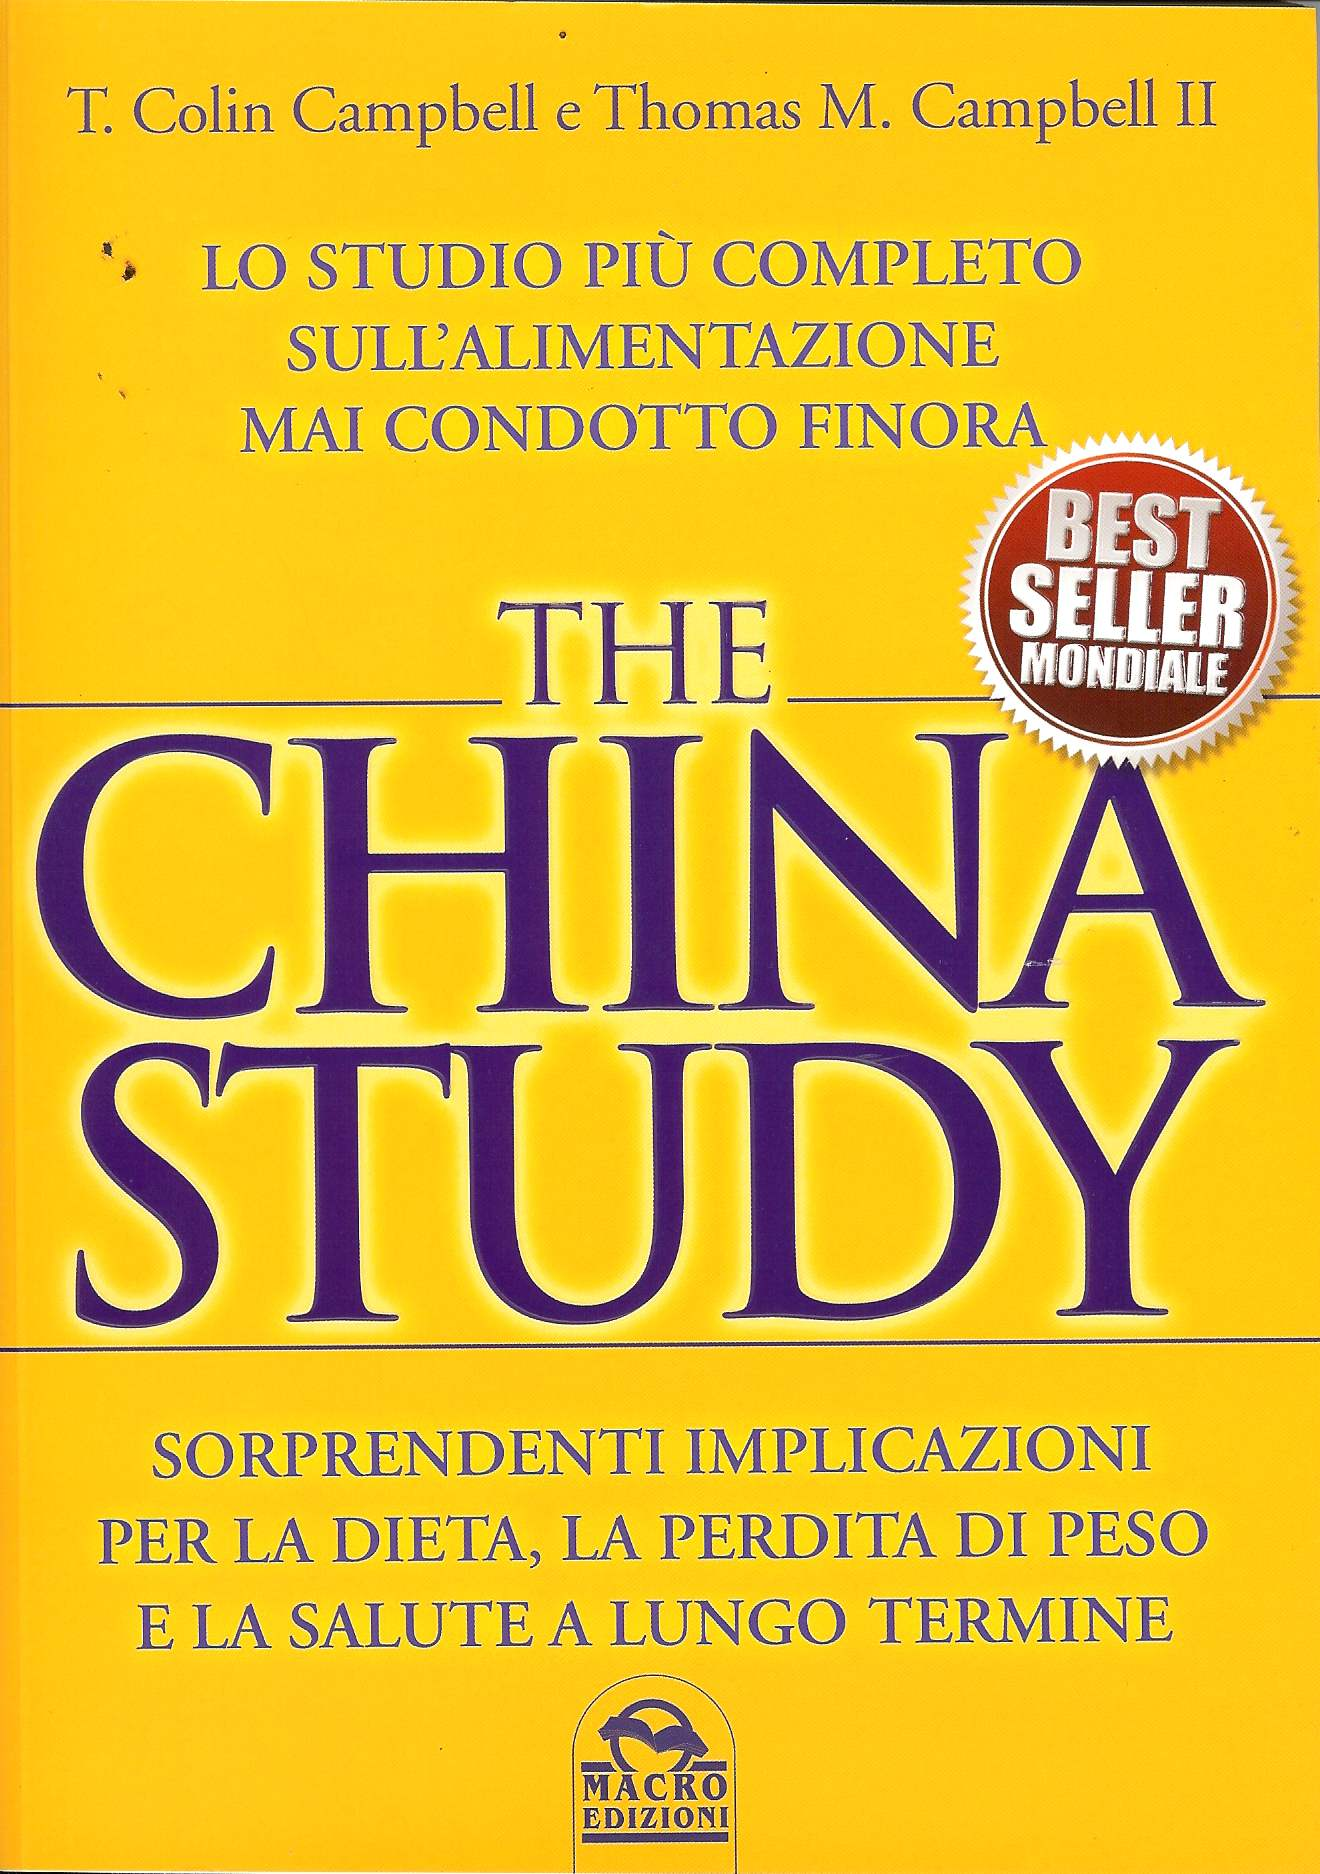 The China Study - T. Colin Campbell Center for Nutrition ...